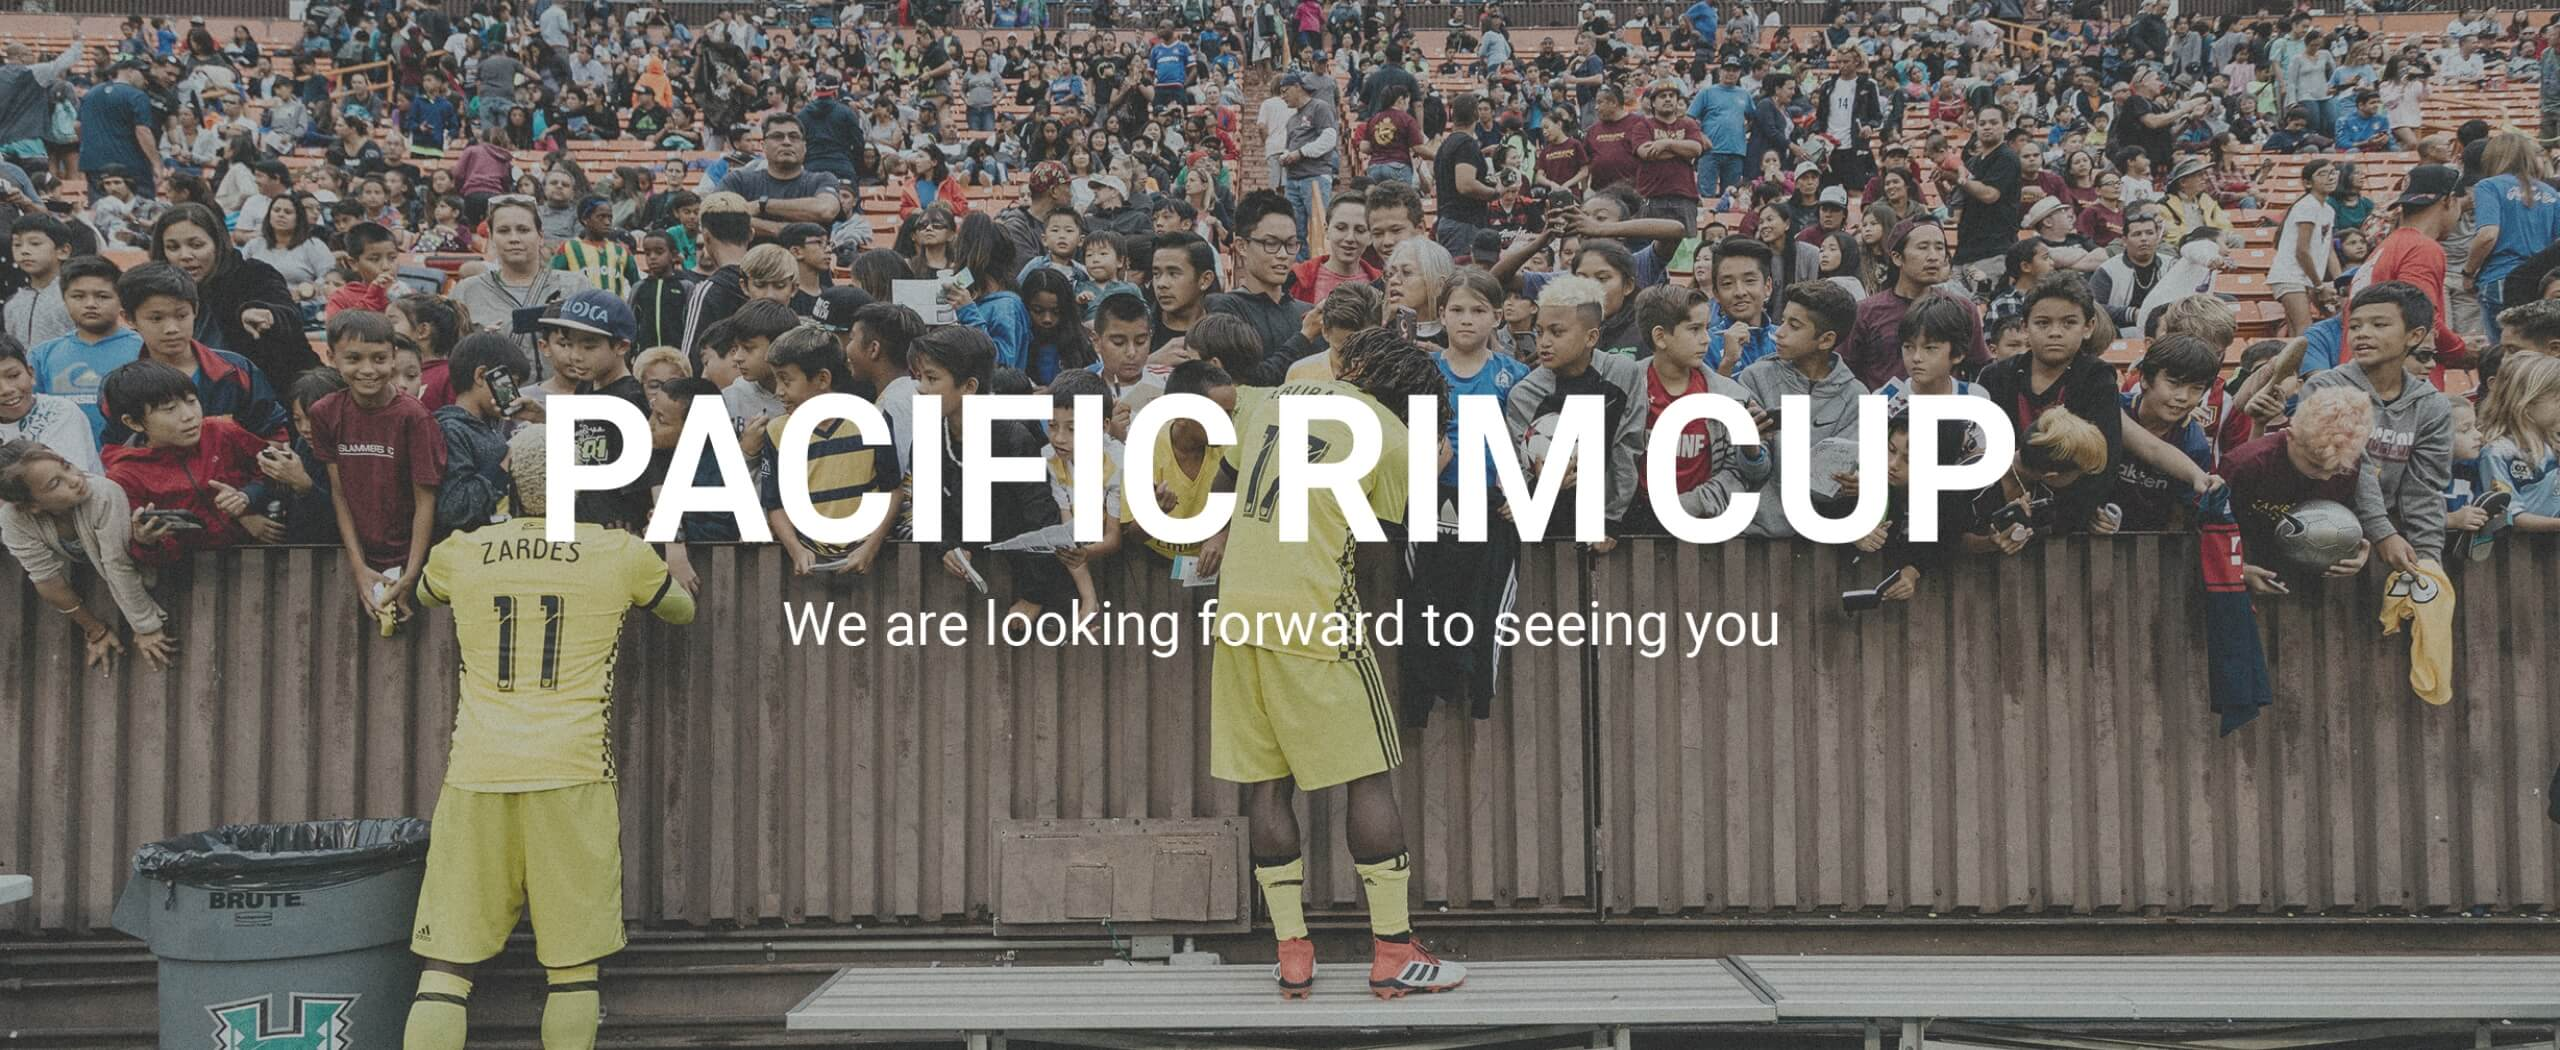 PACIFIC RIM CUP We are looking forward to seeing you in 2021.